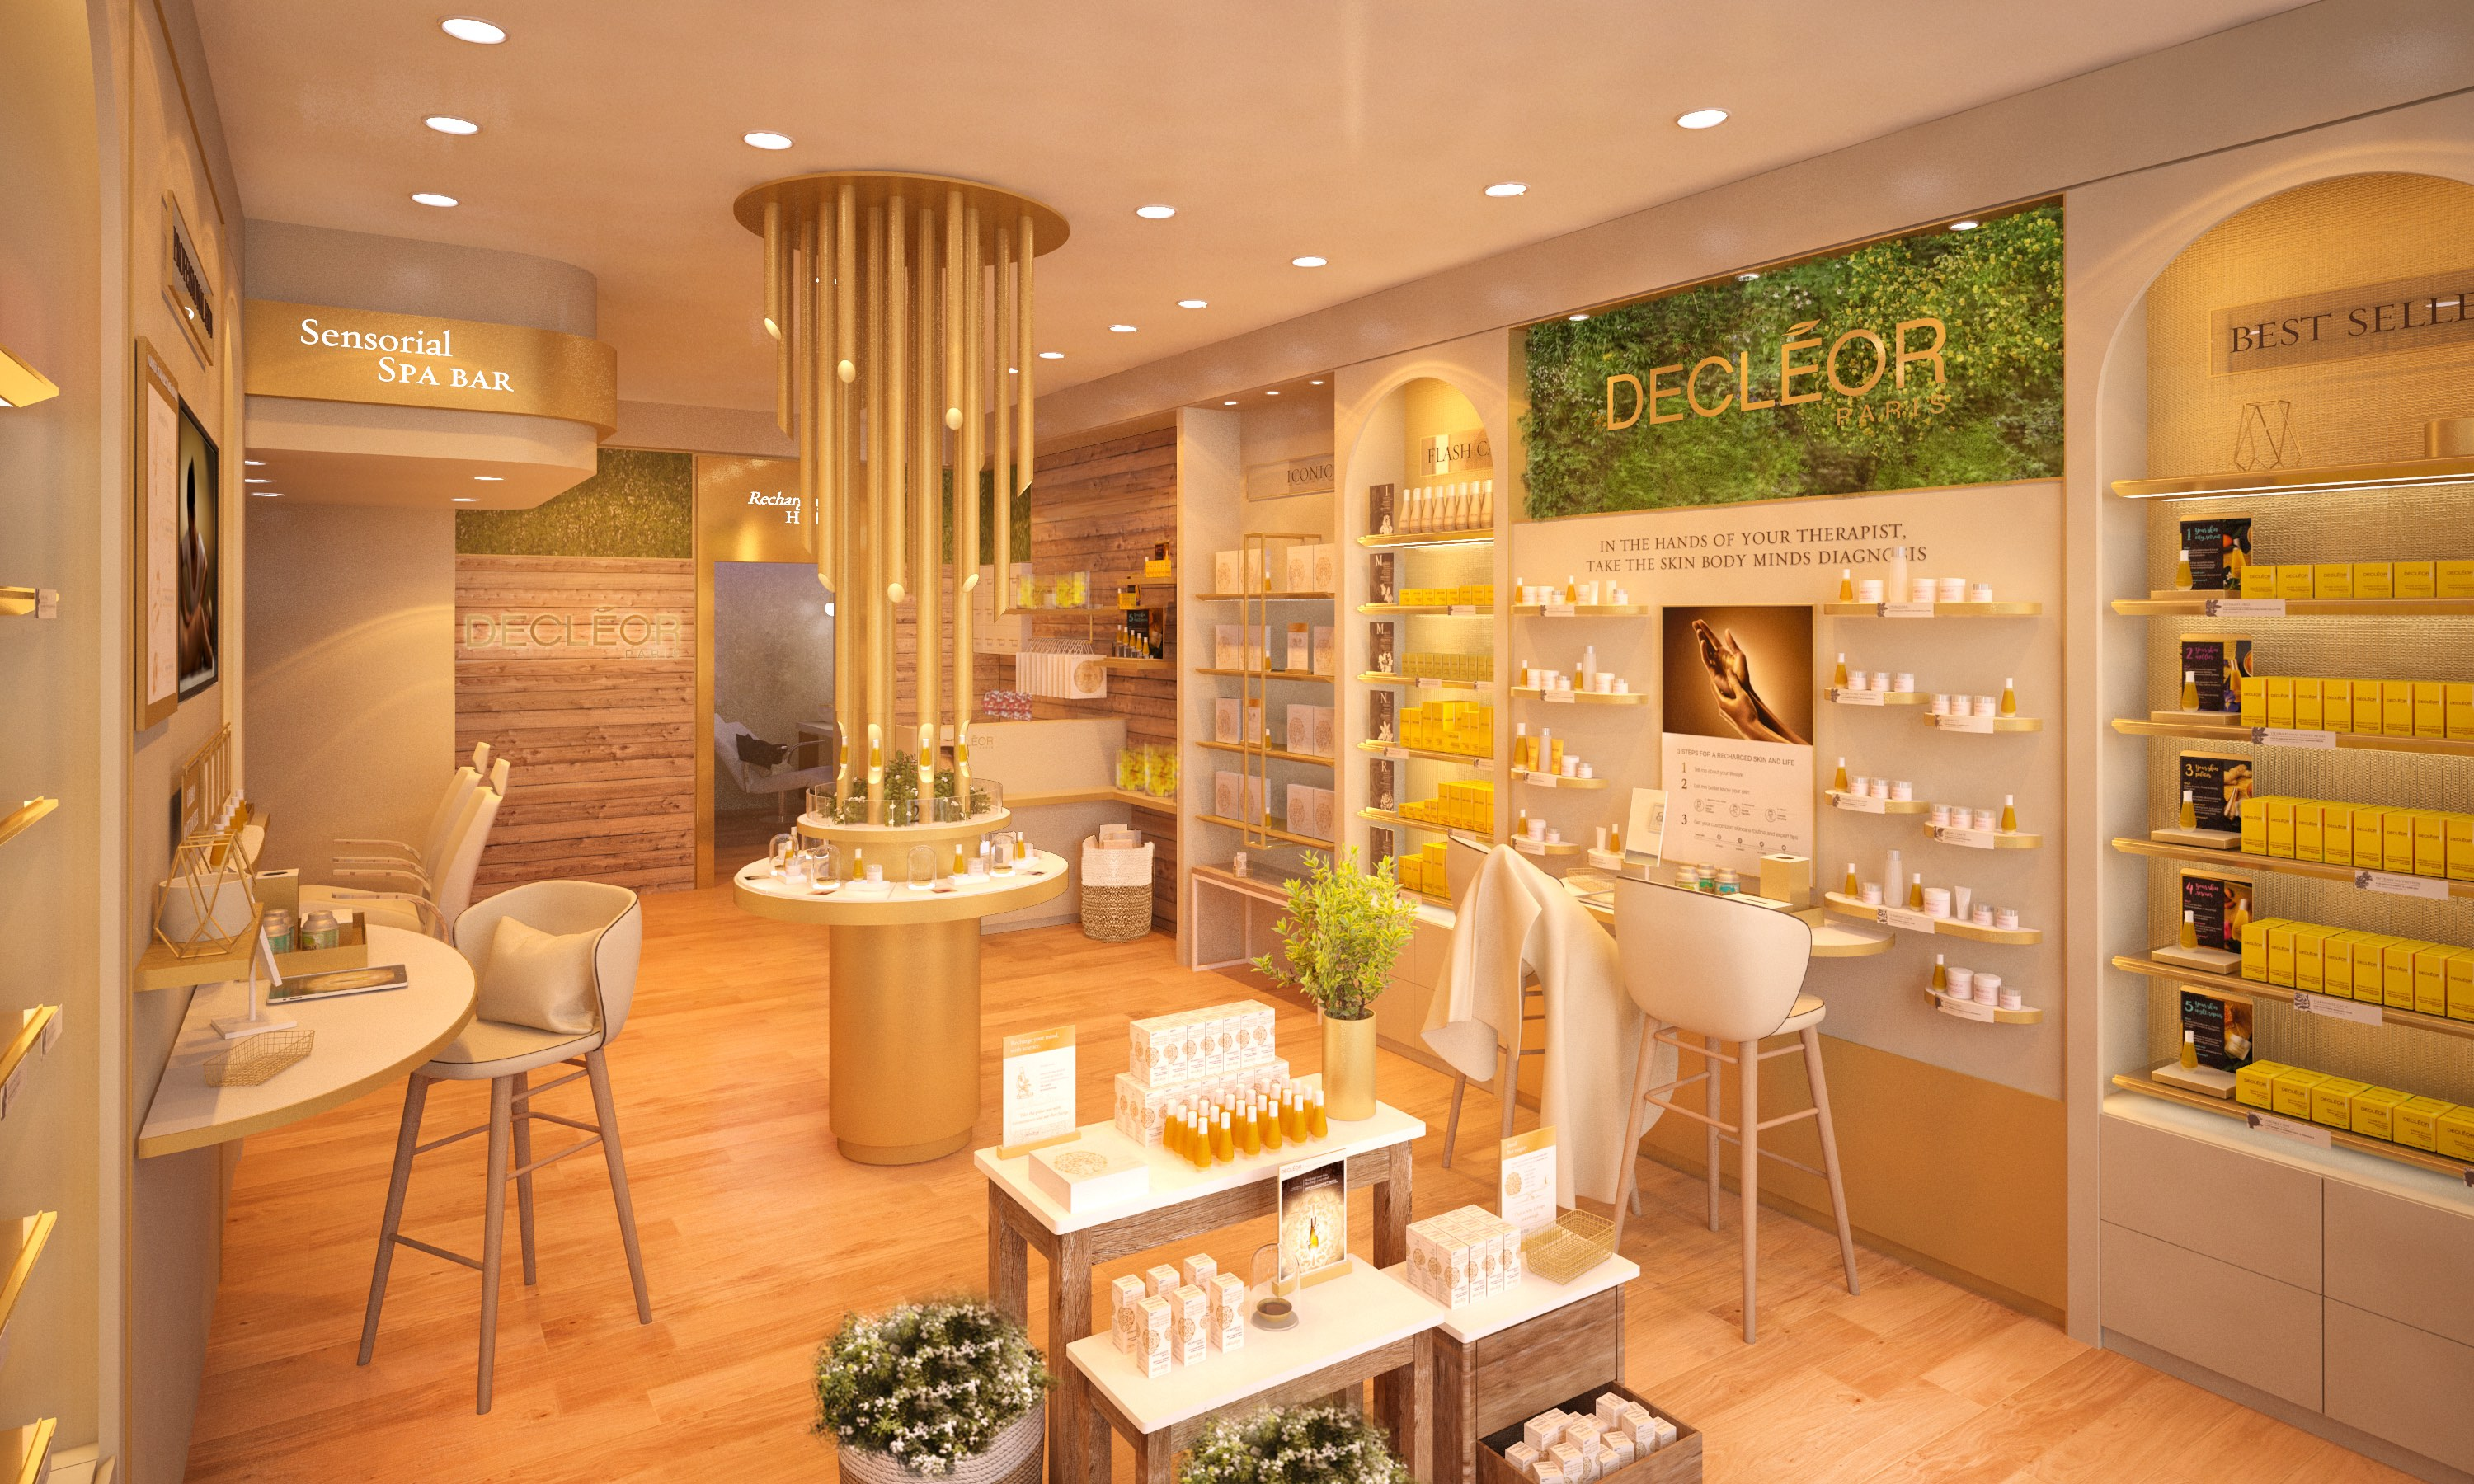 Decleor boutique retail space